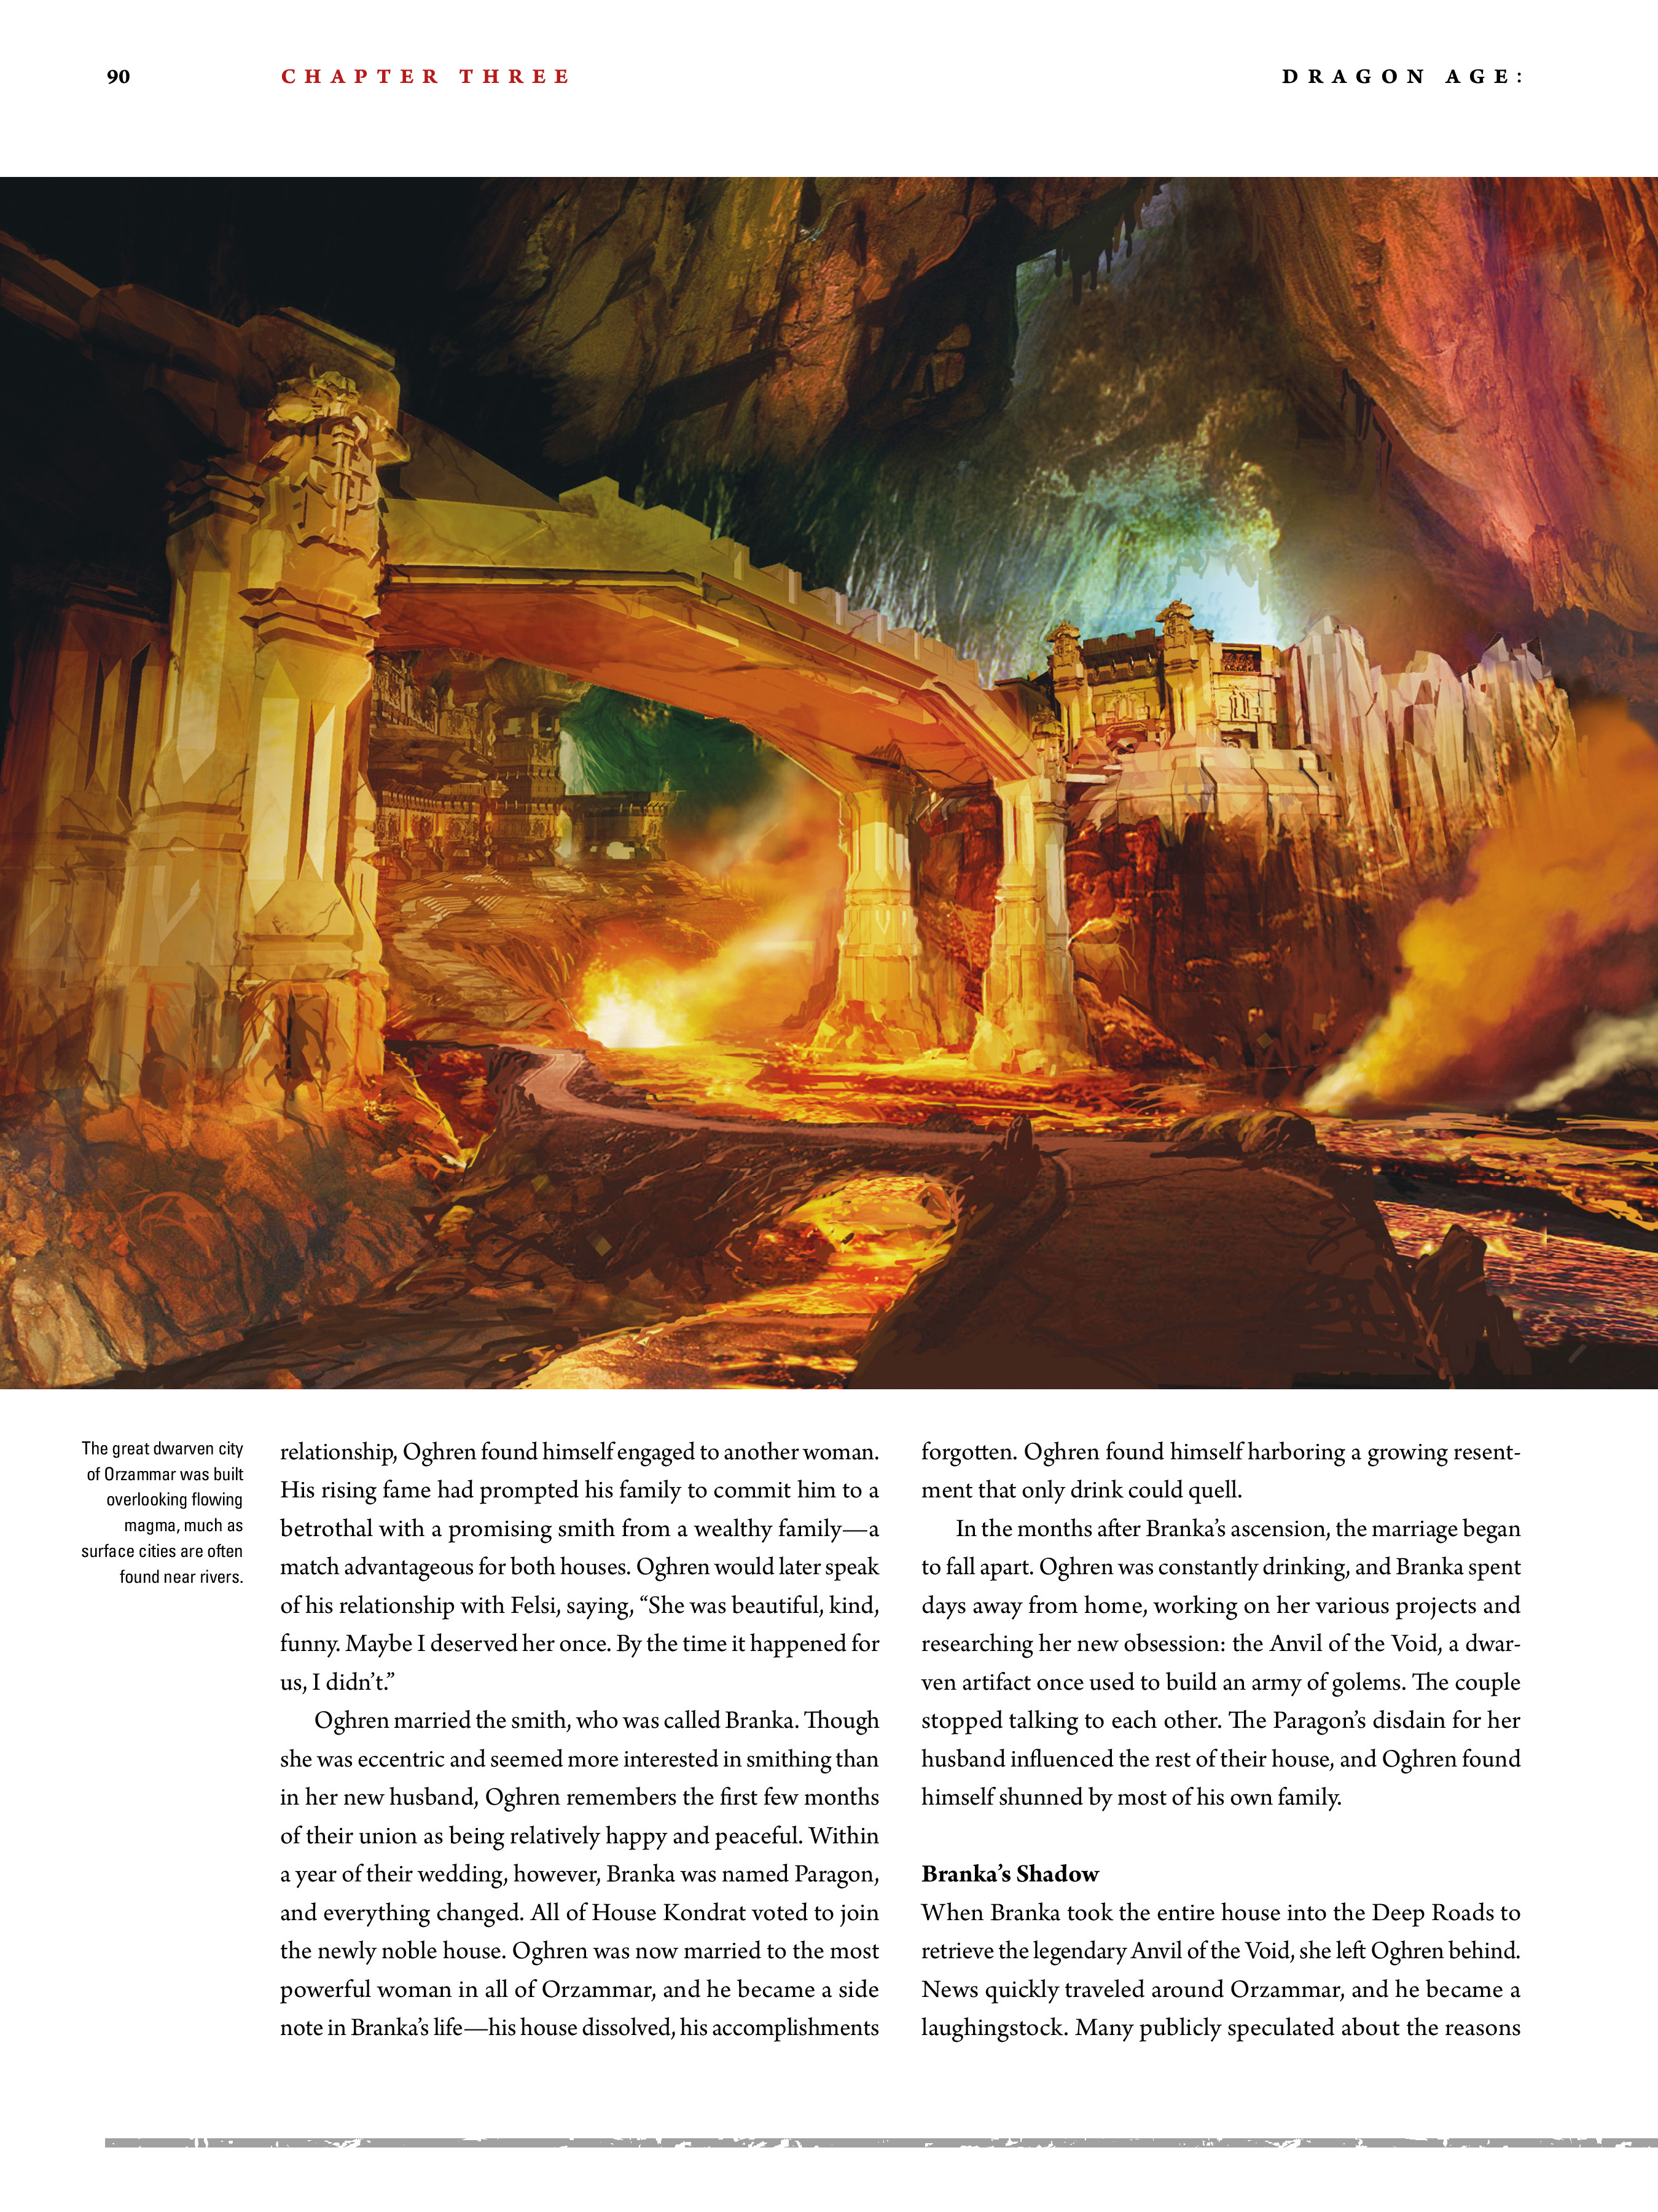 Read online Dragon Age: The World of Thedas comic -  Issue # TPB 2 - 86